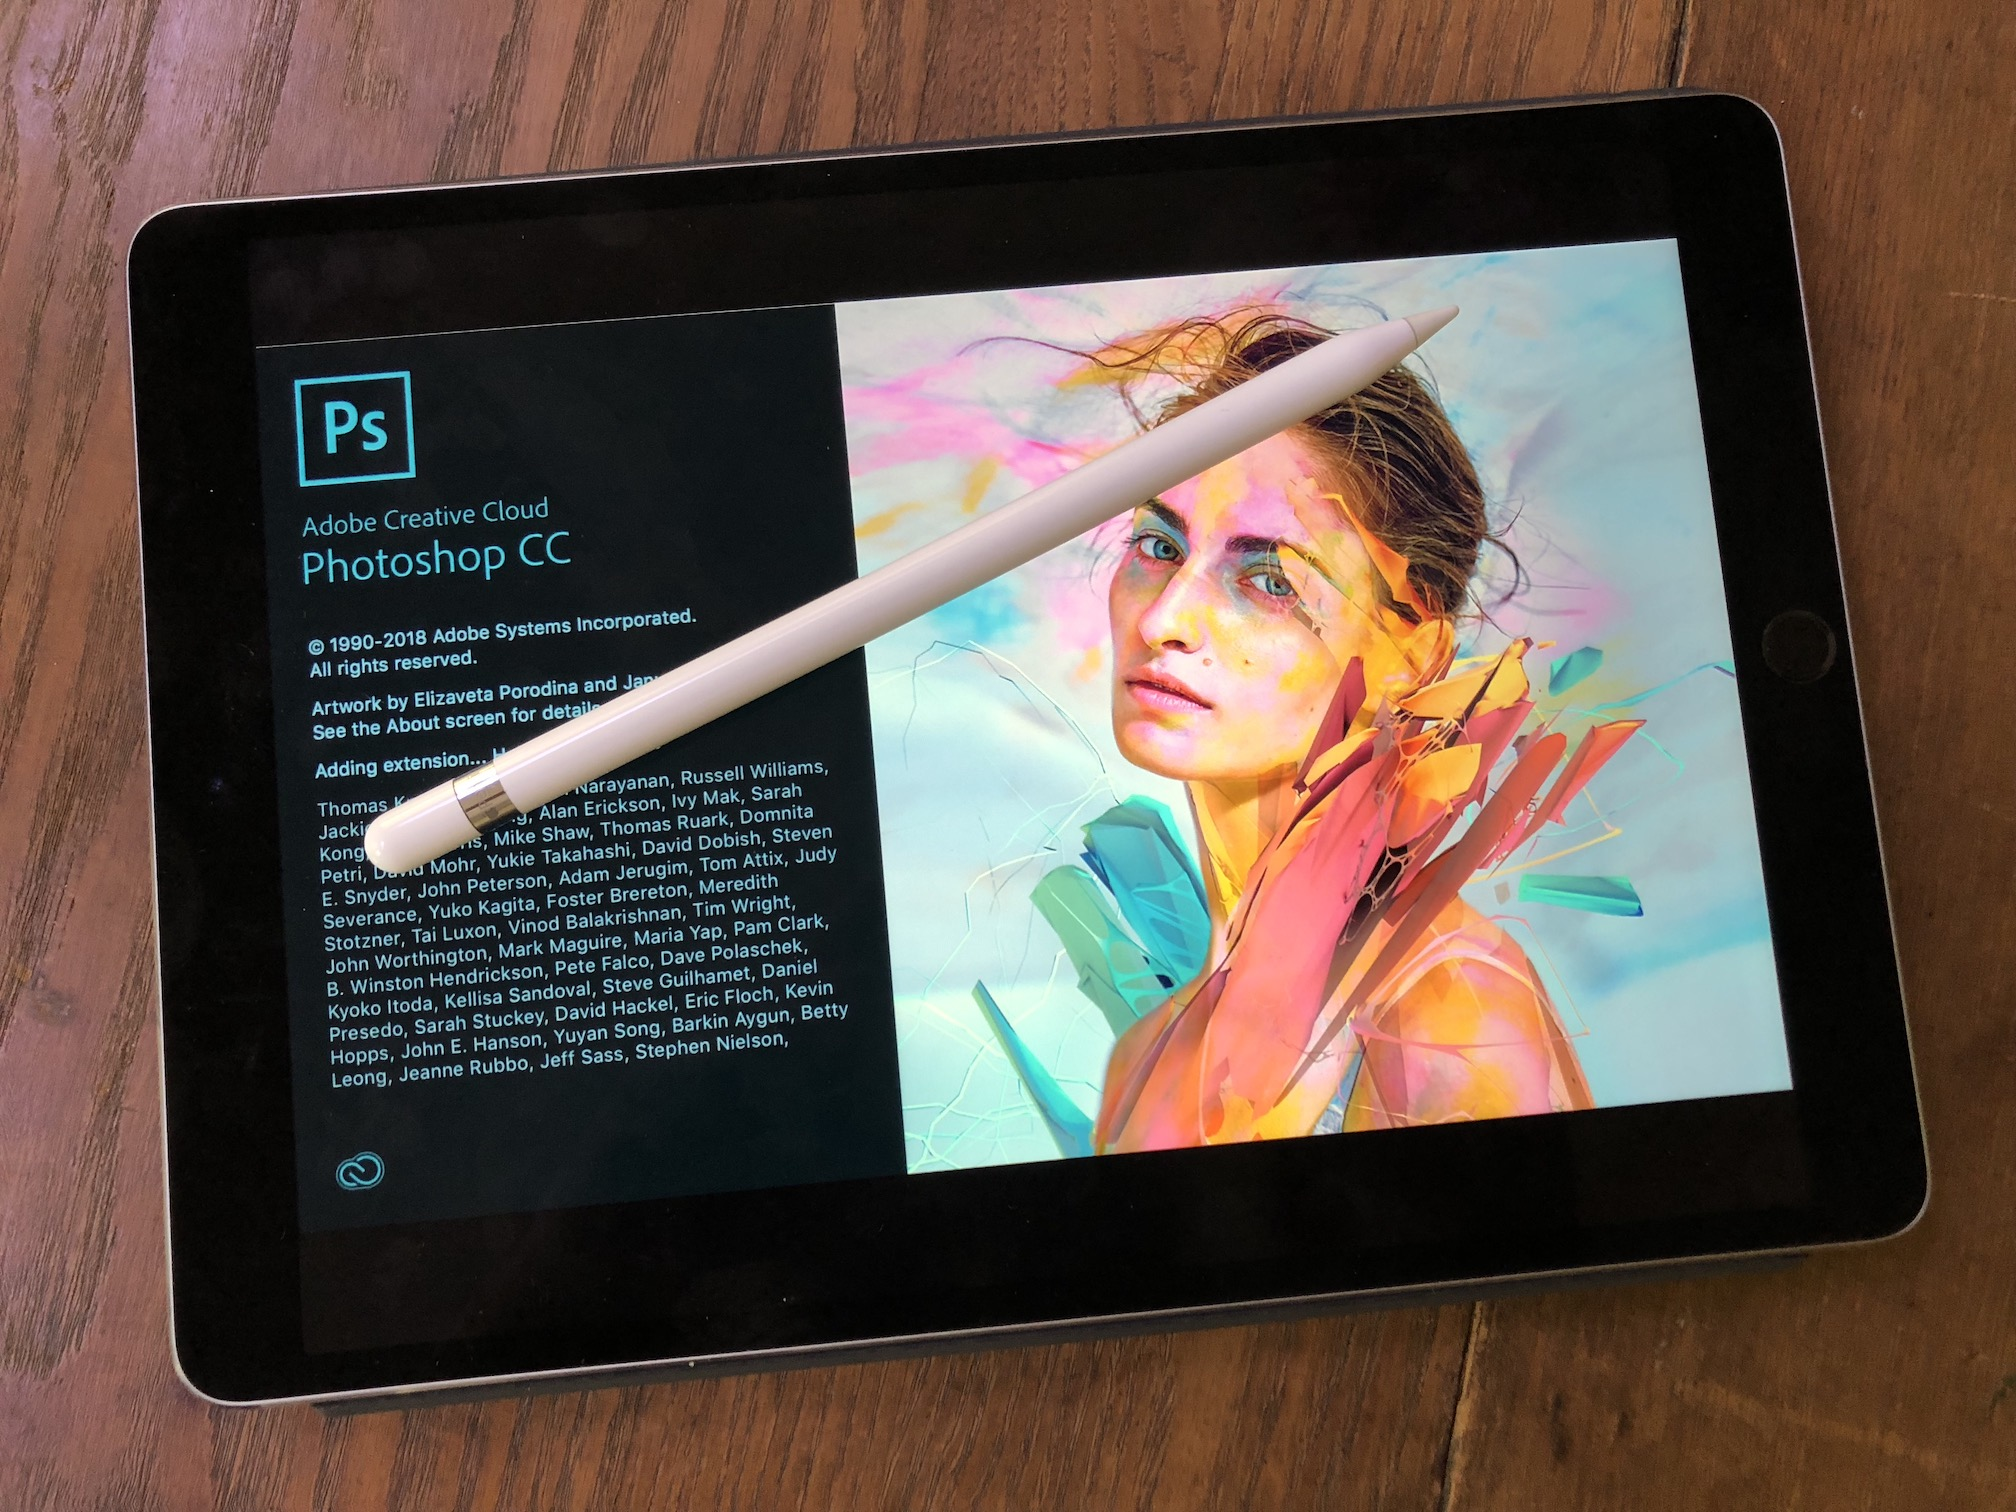 adobe photoshop cc for ipad pro release date